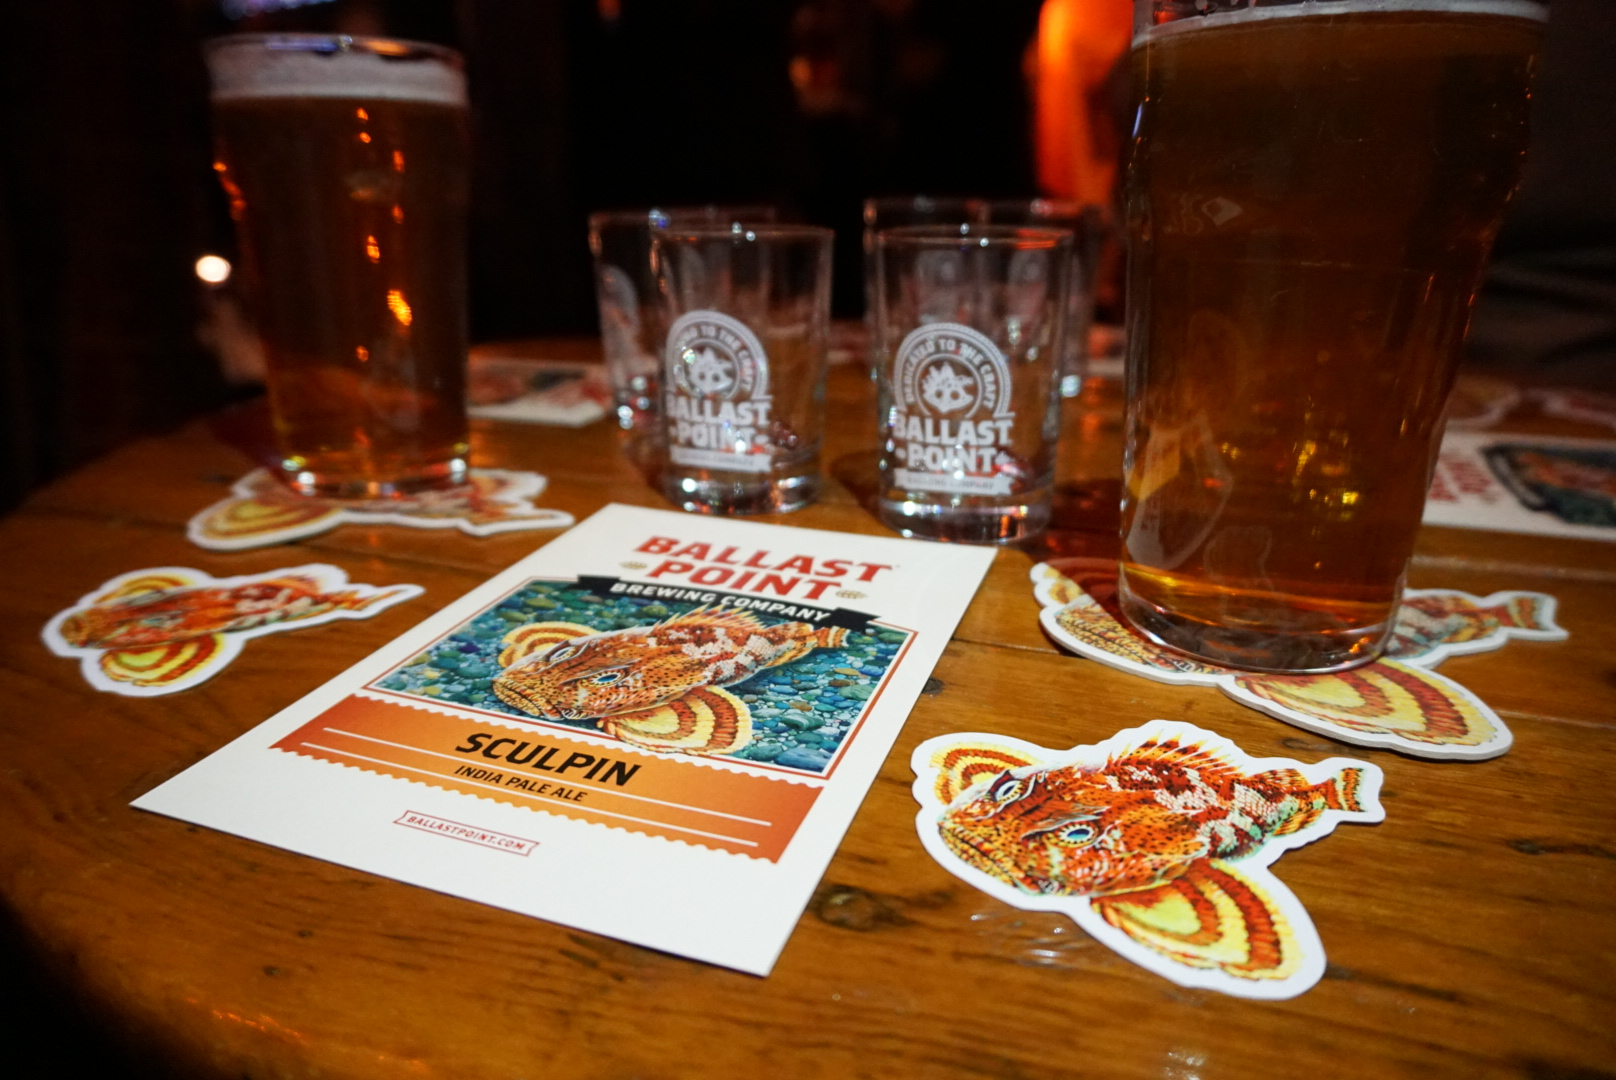 Sculpin Session #sponsored